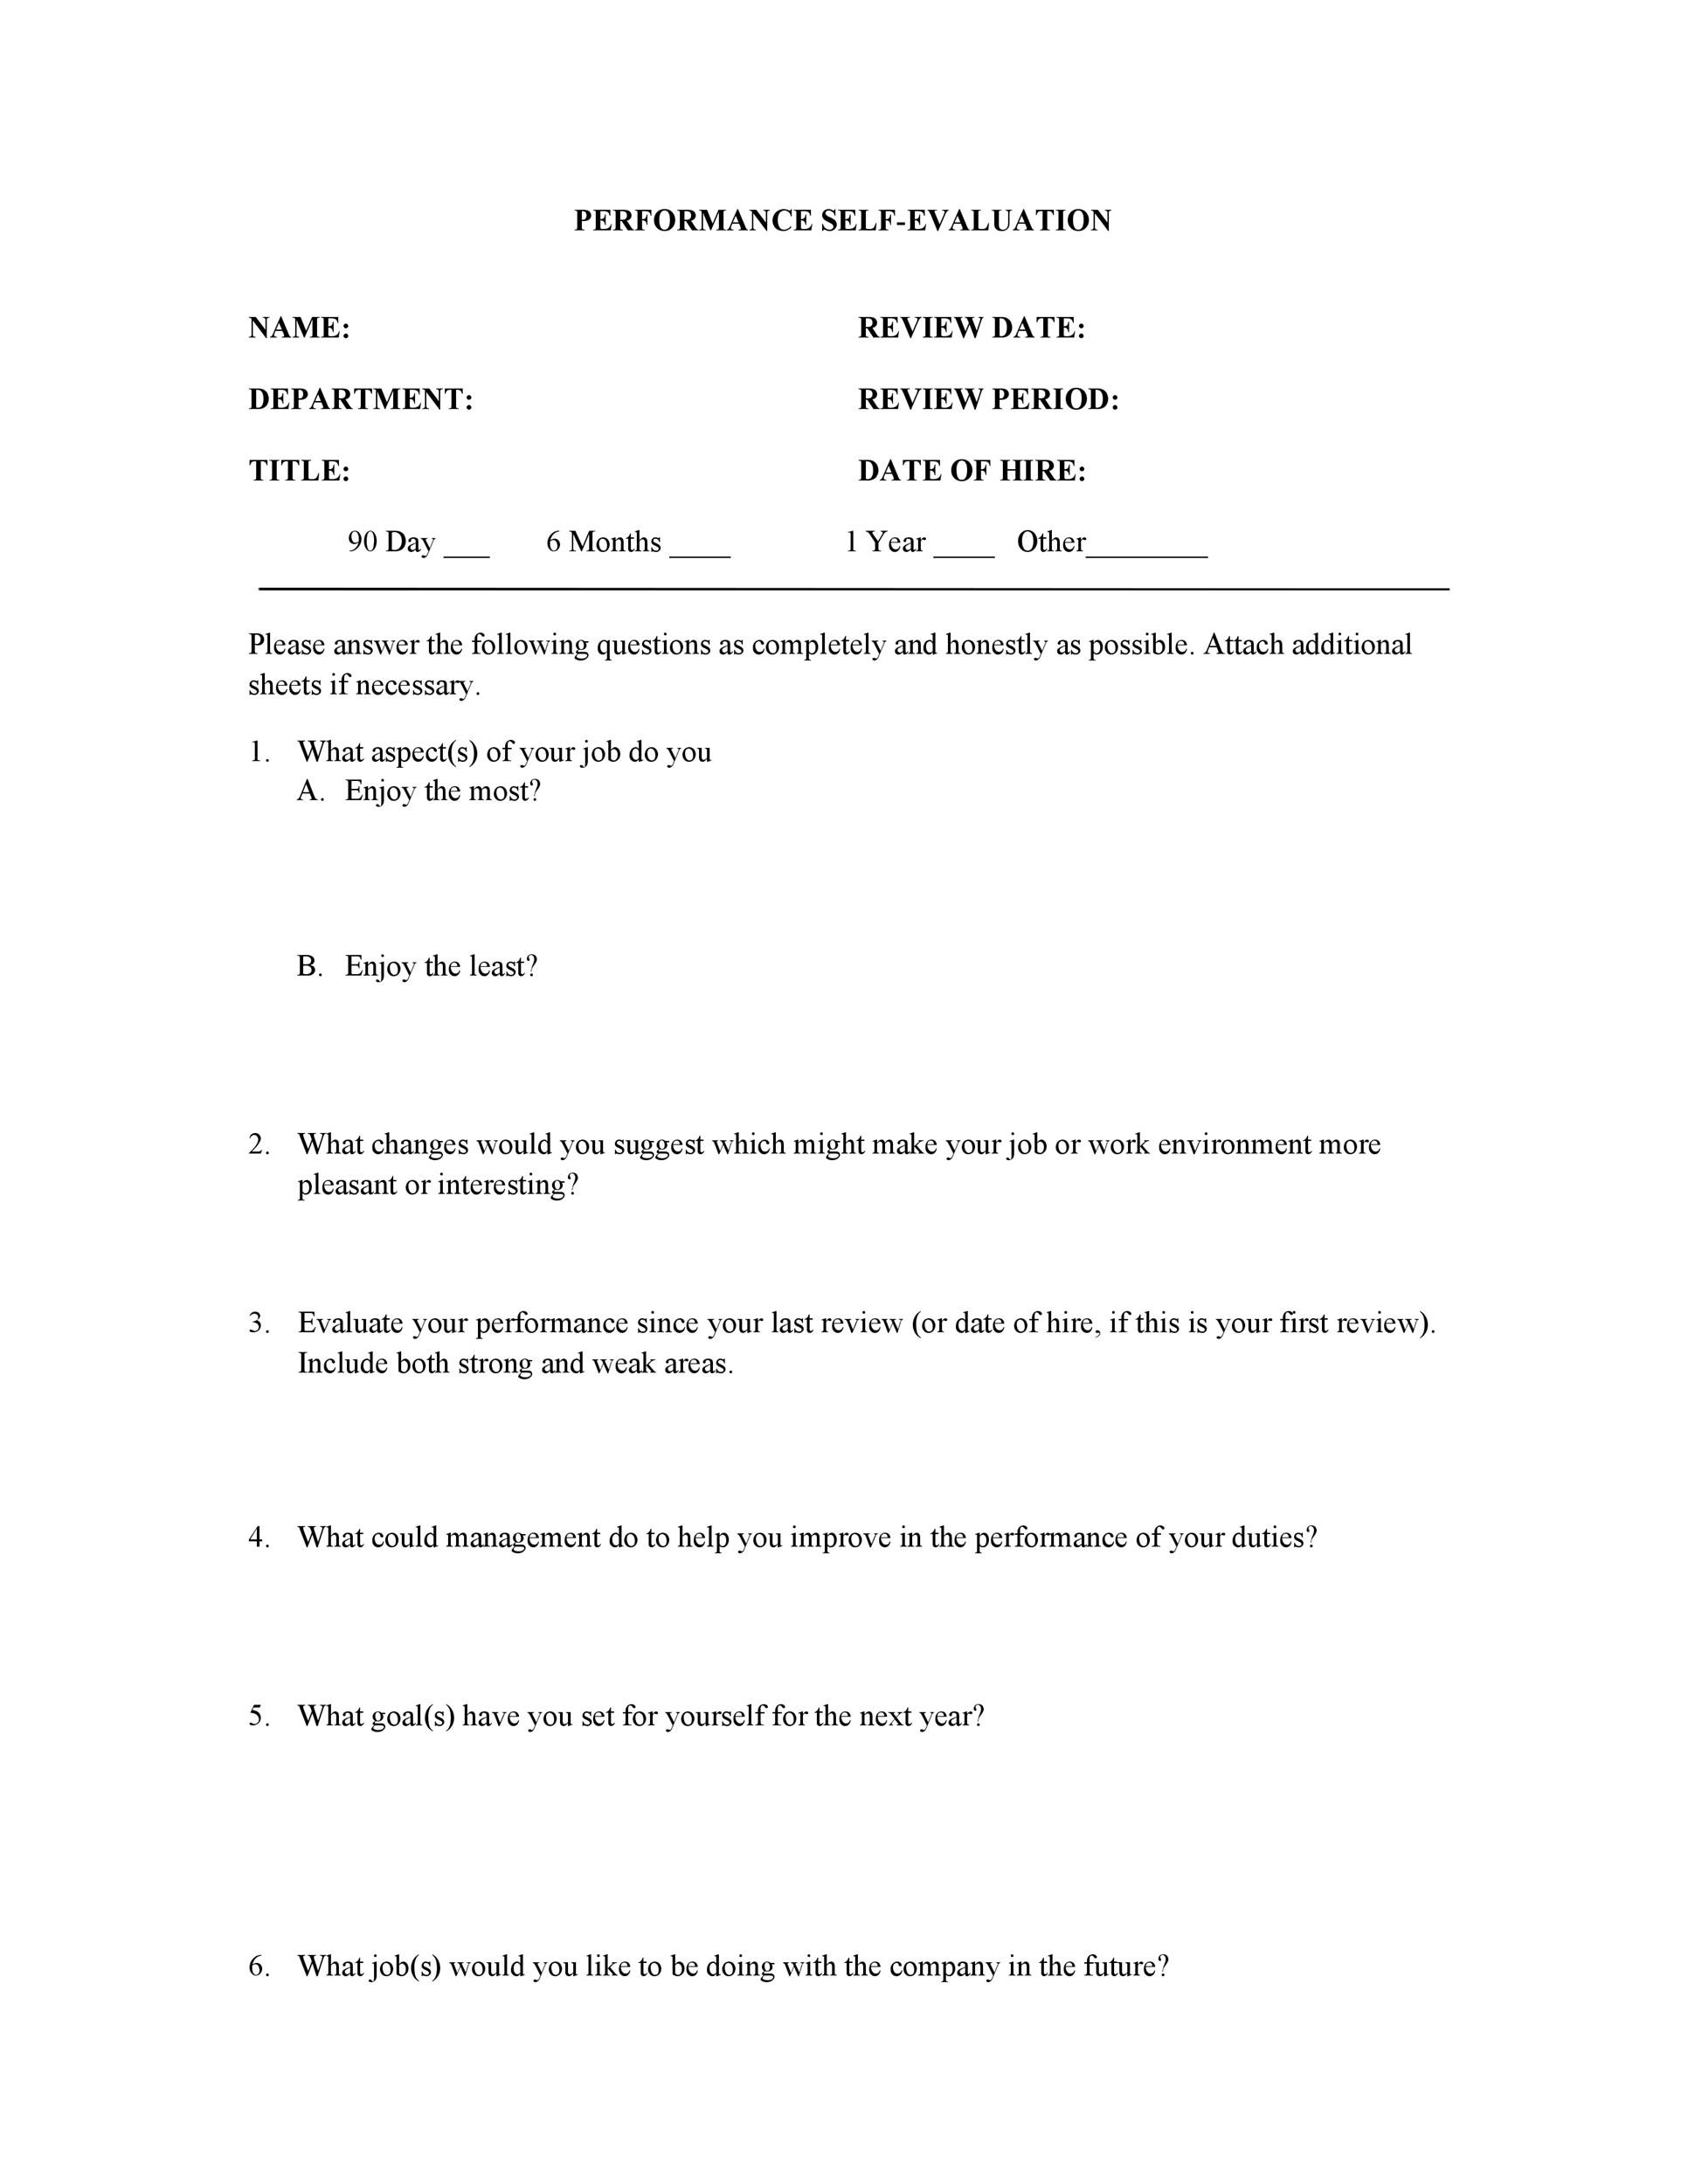 Year End Review Template: 50+ Self Evaluation Examples, Forms & Questions ��� Template Lab